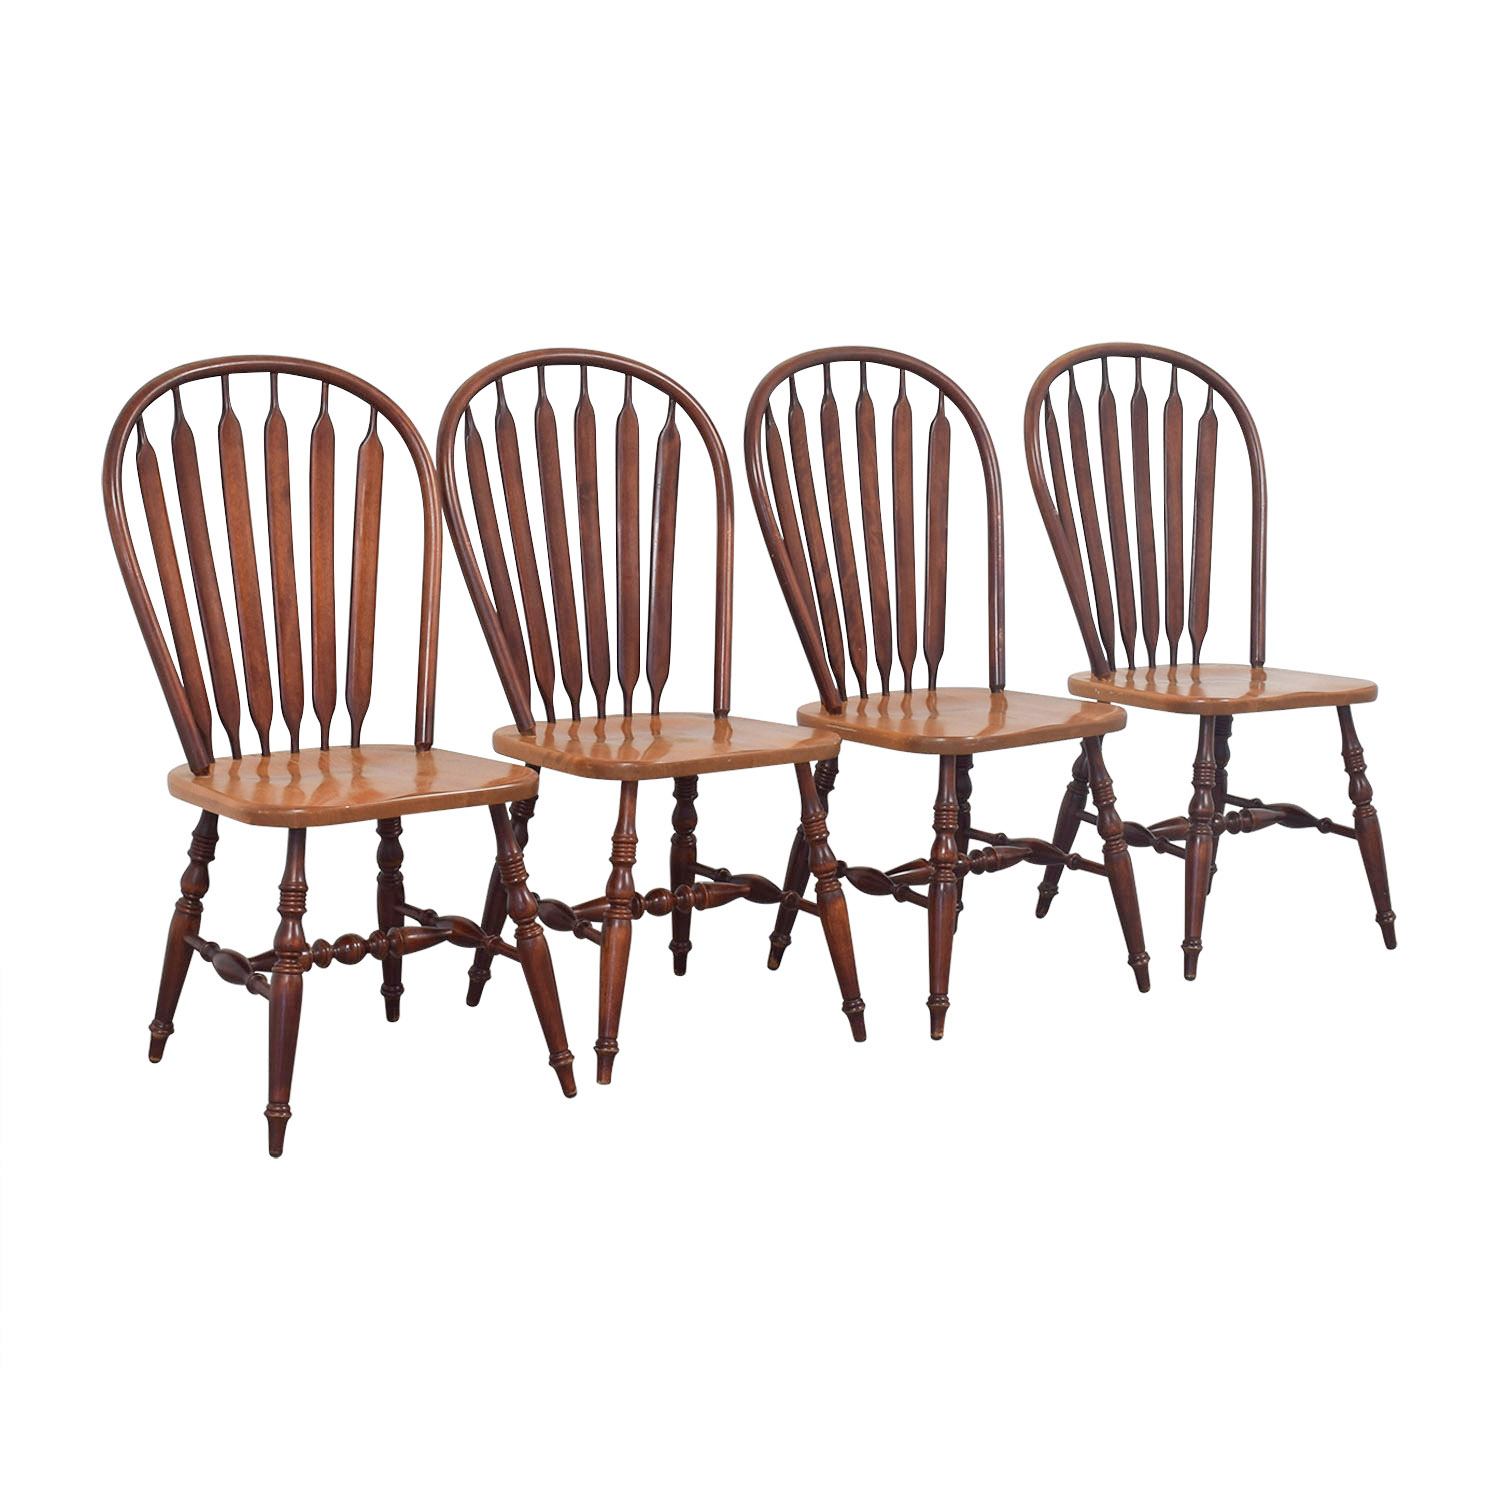 Canadel Windsor Wood Dining Chairs / Dining Chairs